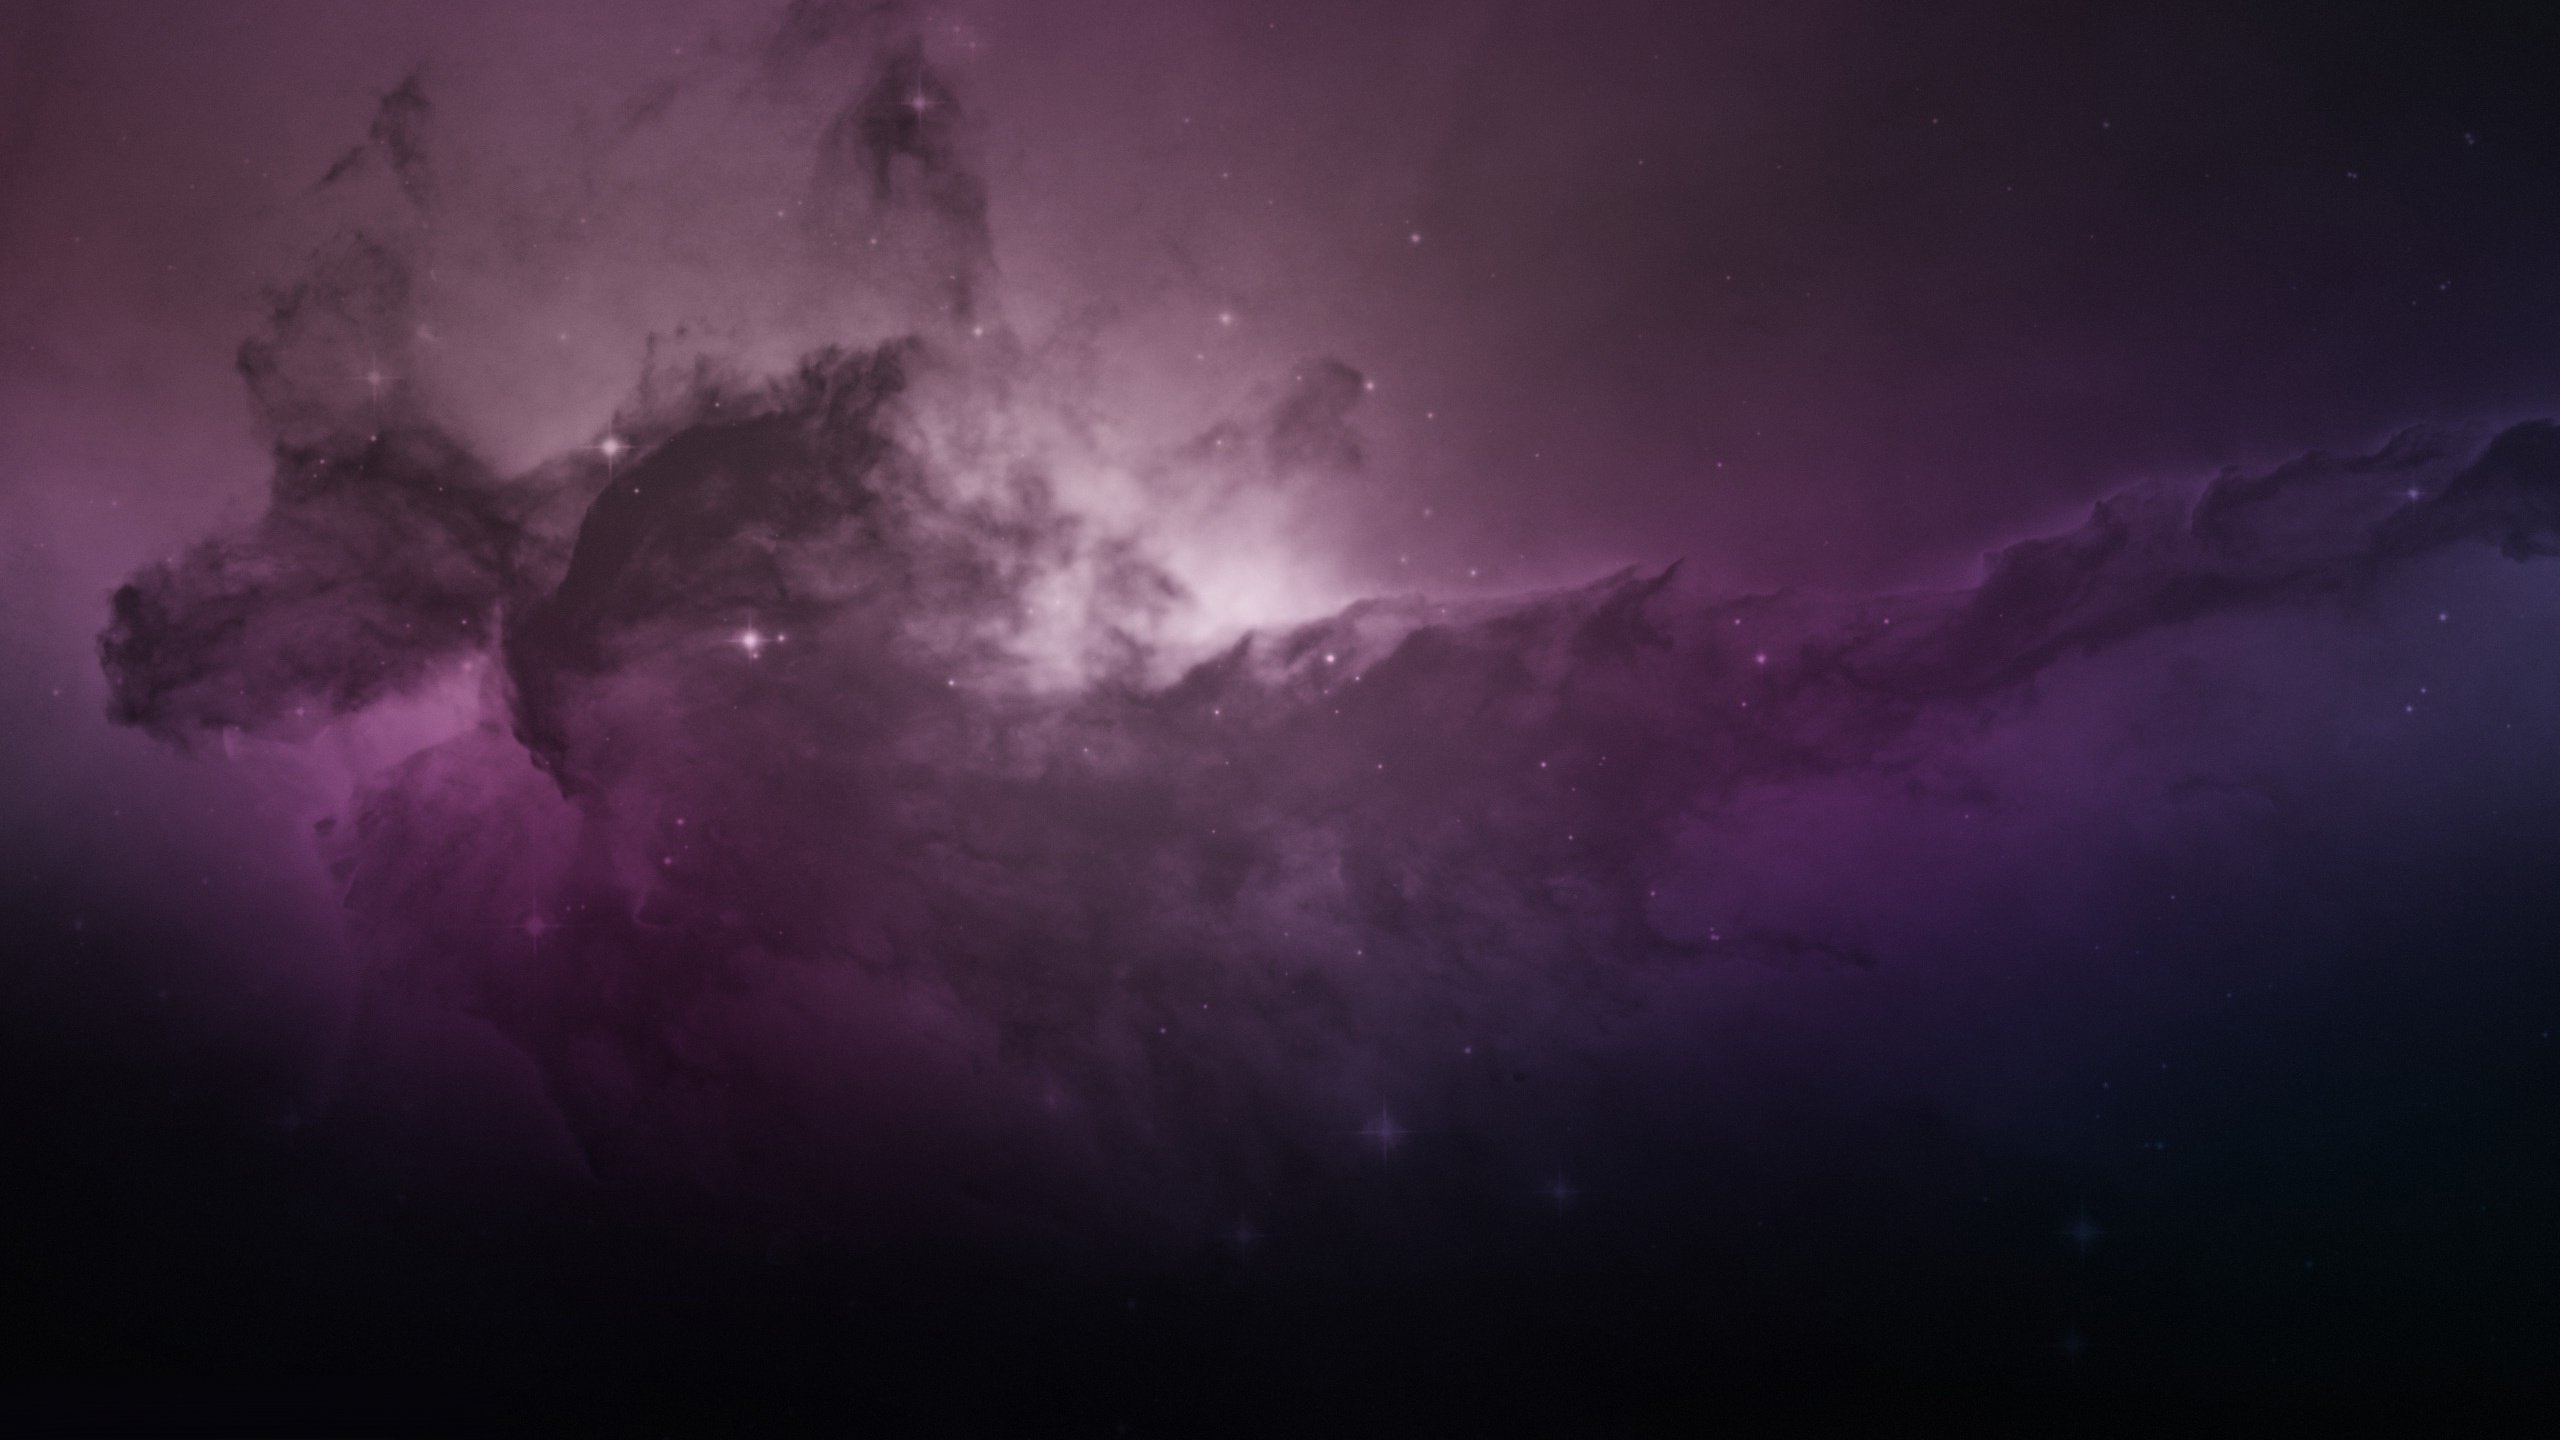 wallpaper nebula eagle computer space media 2560x1440 2560x1440